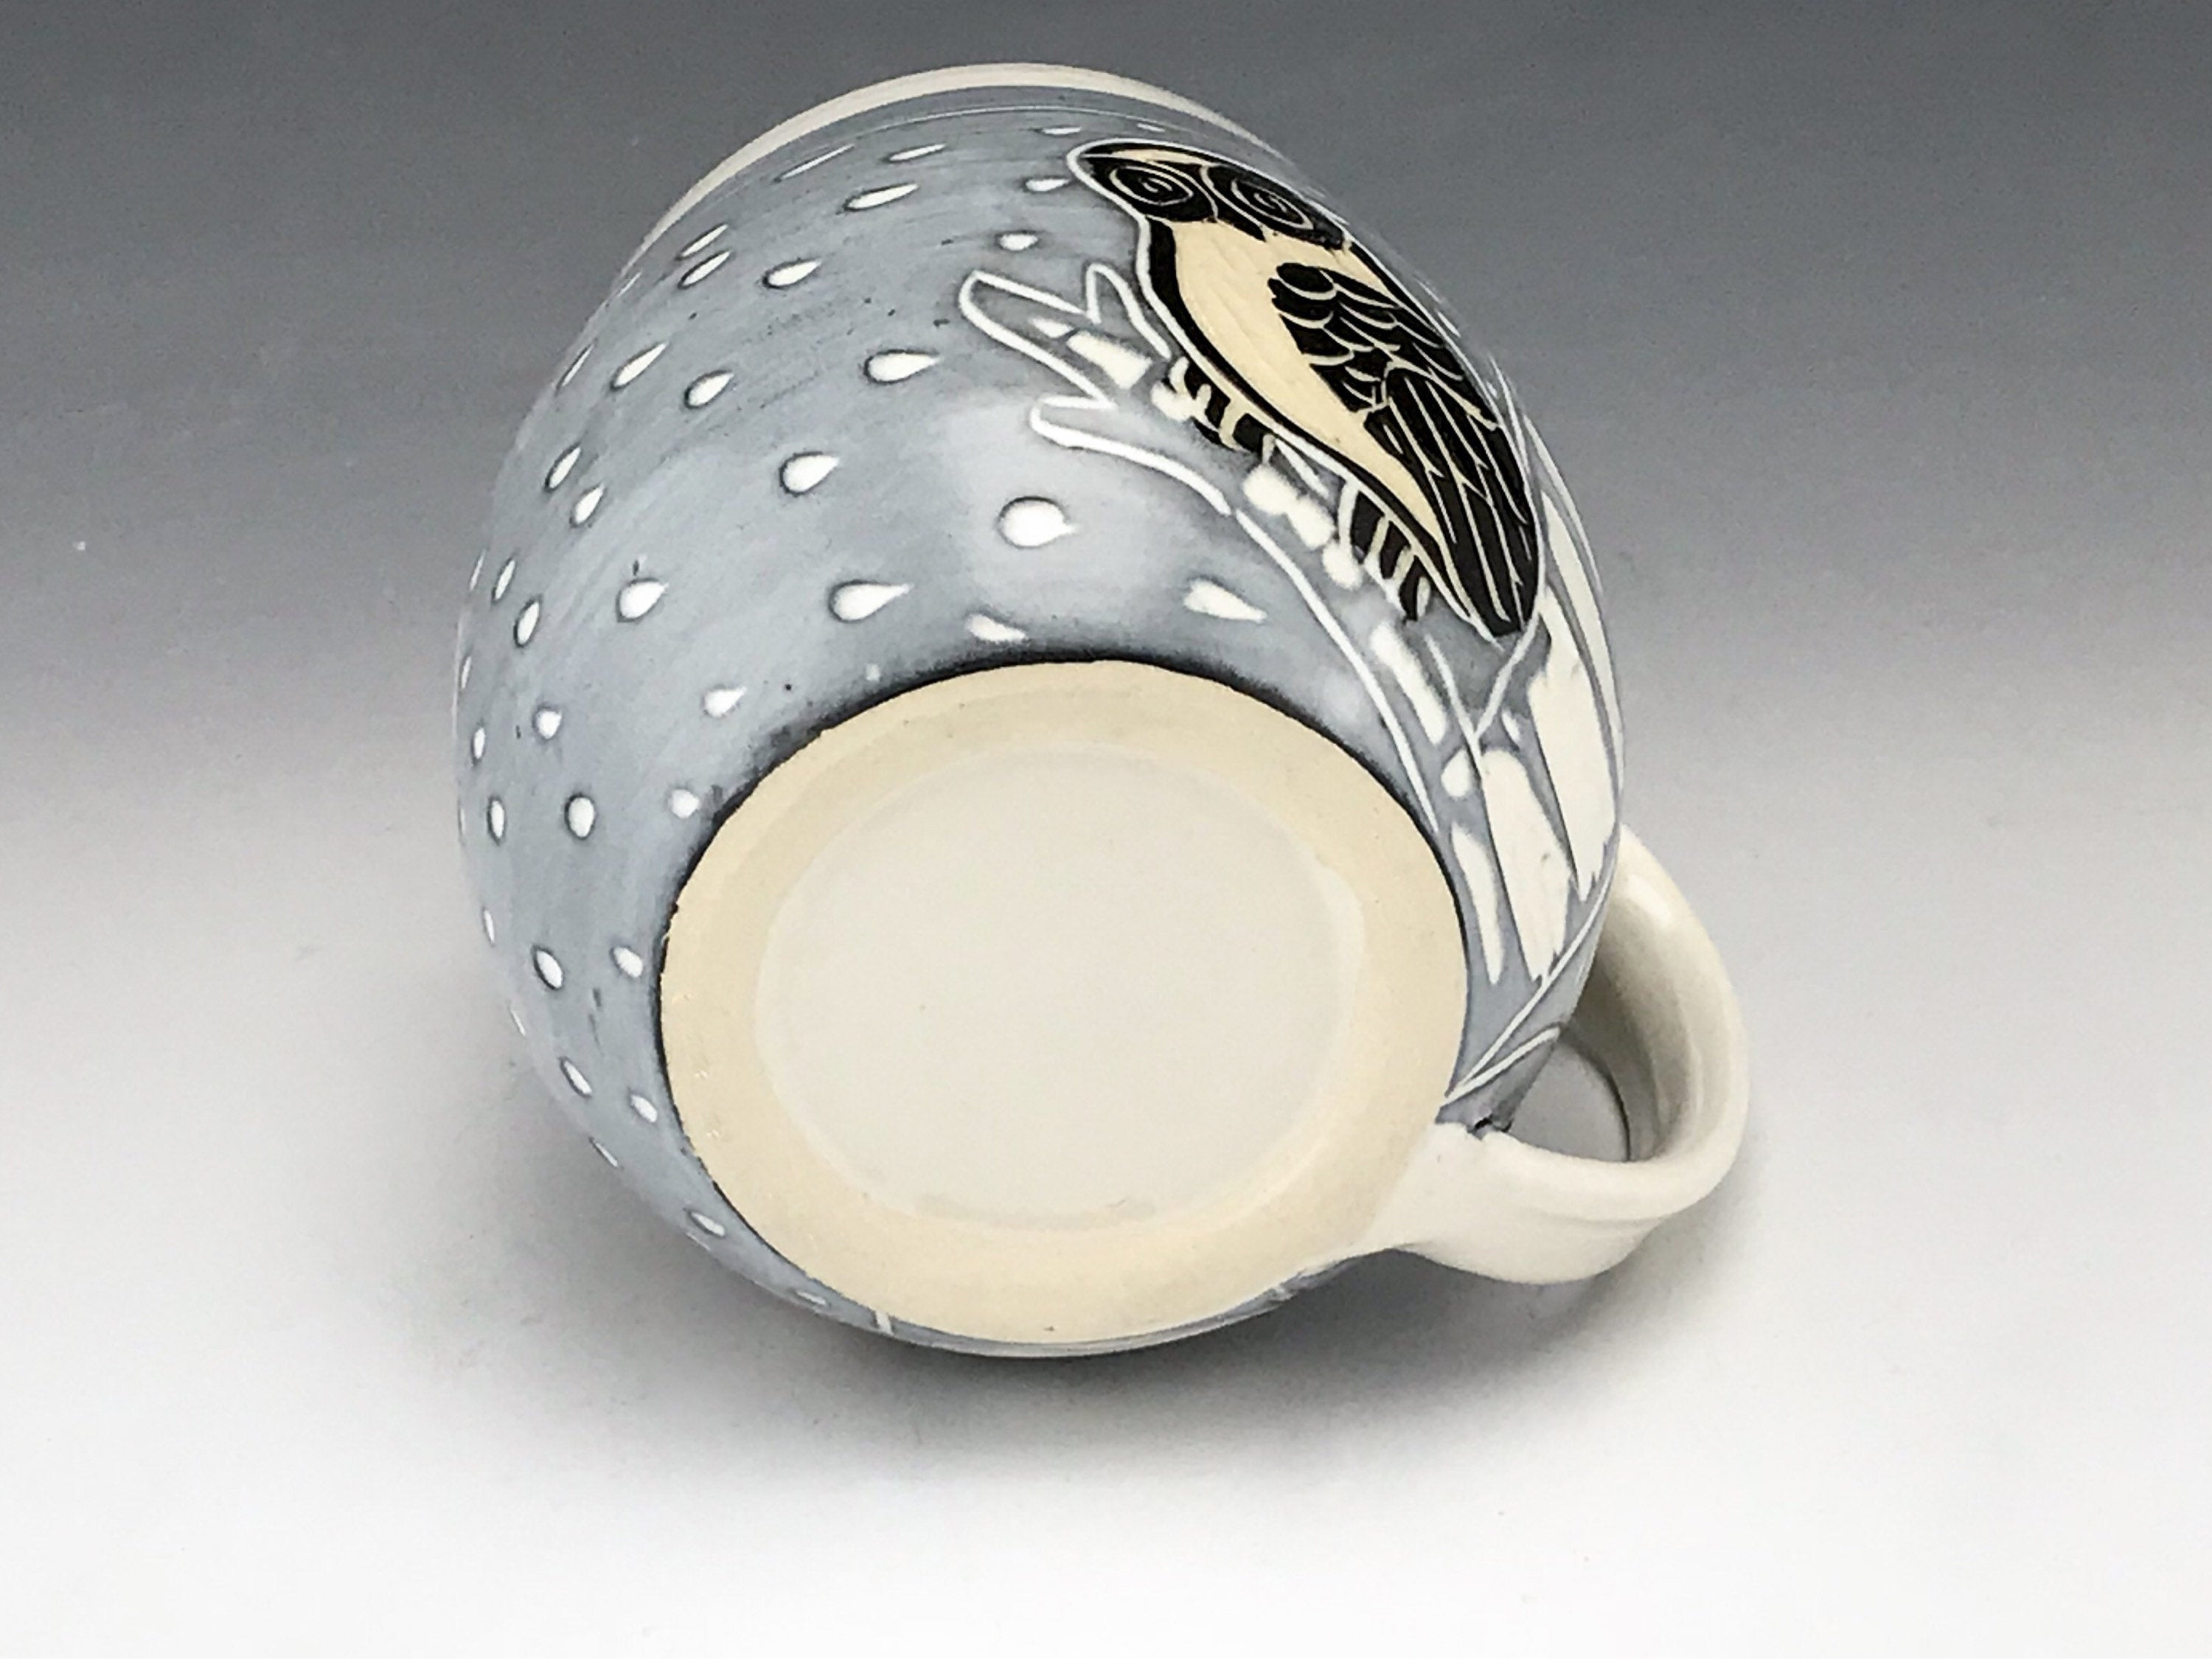 Handmade Sgraffito Owl Pottery Mug in Black and White